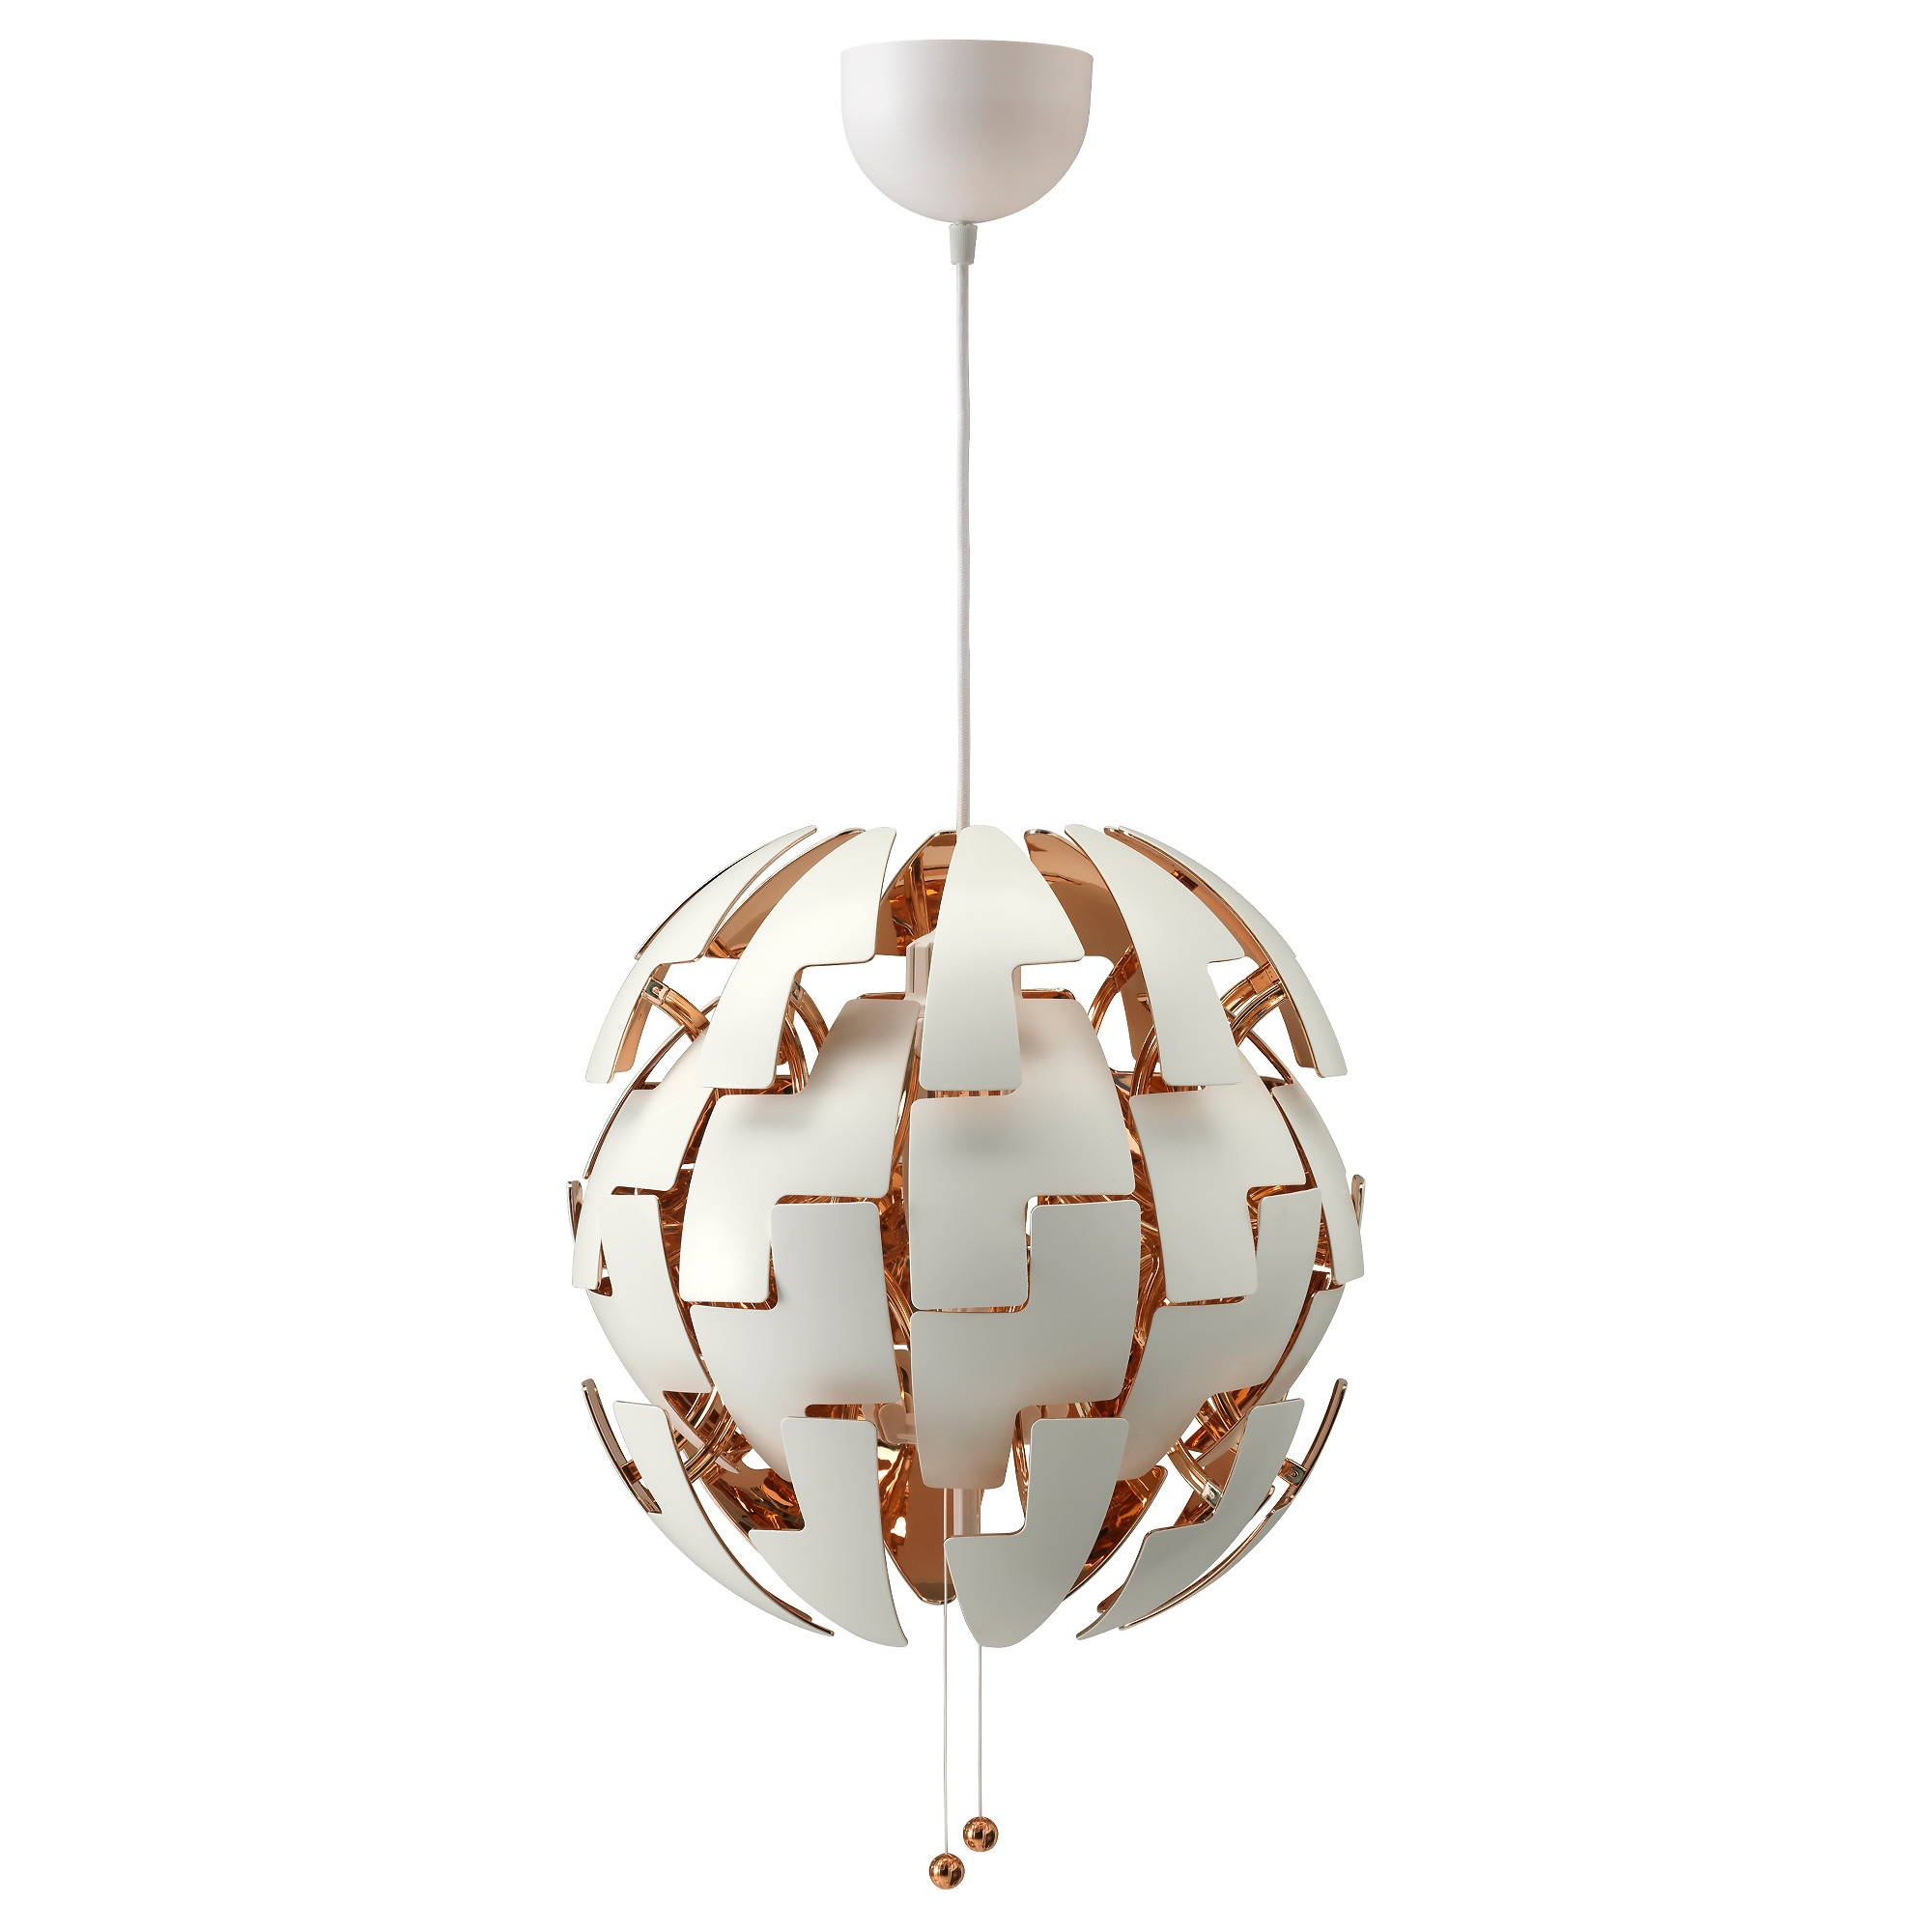 Ikea ps 2014 pendant lamp whitecopper color ikea 2018 07 21t0500 0700 mozeypictures Image collections